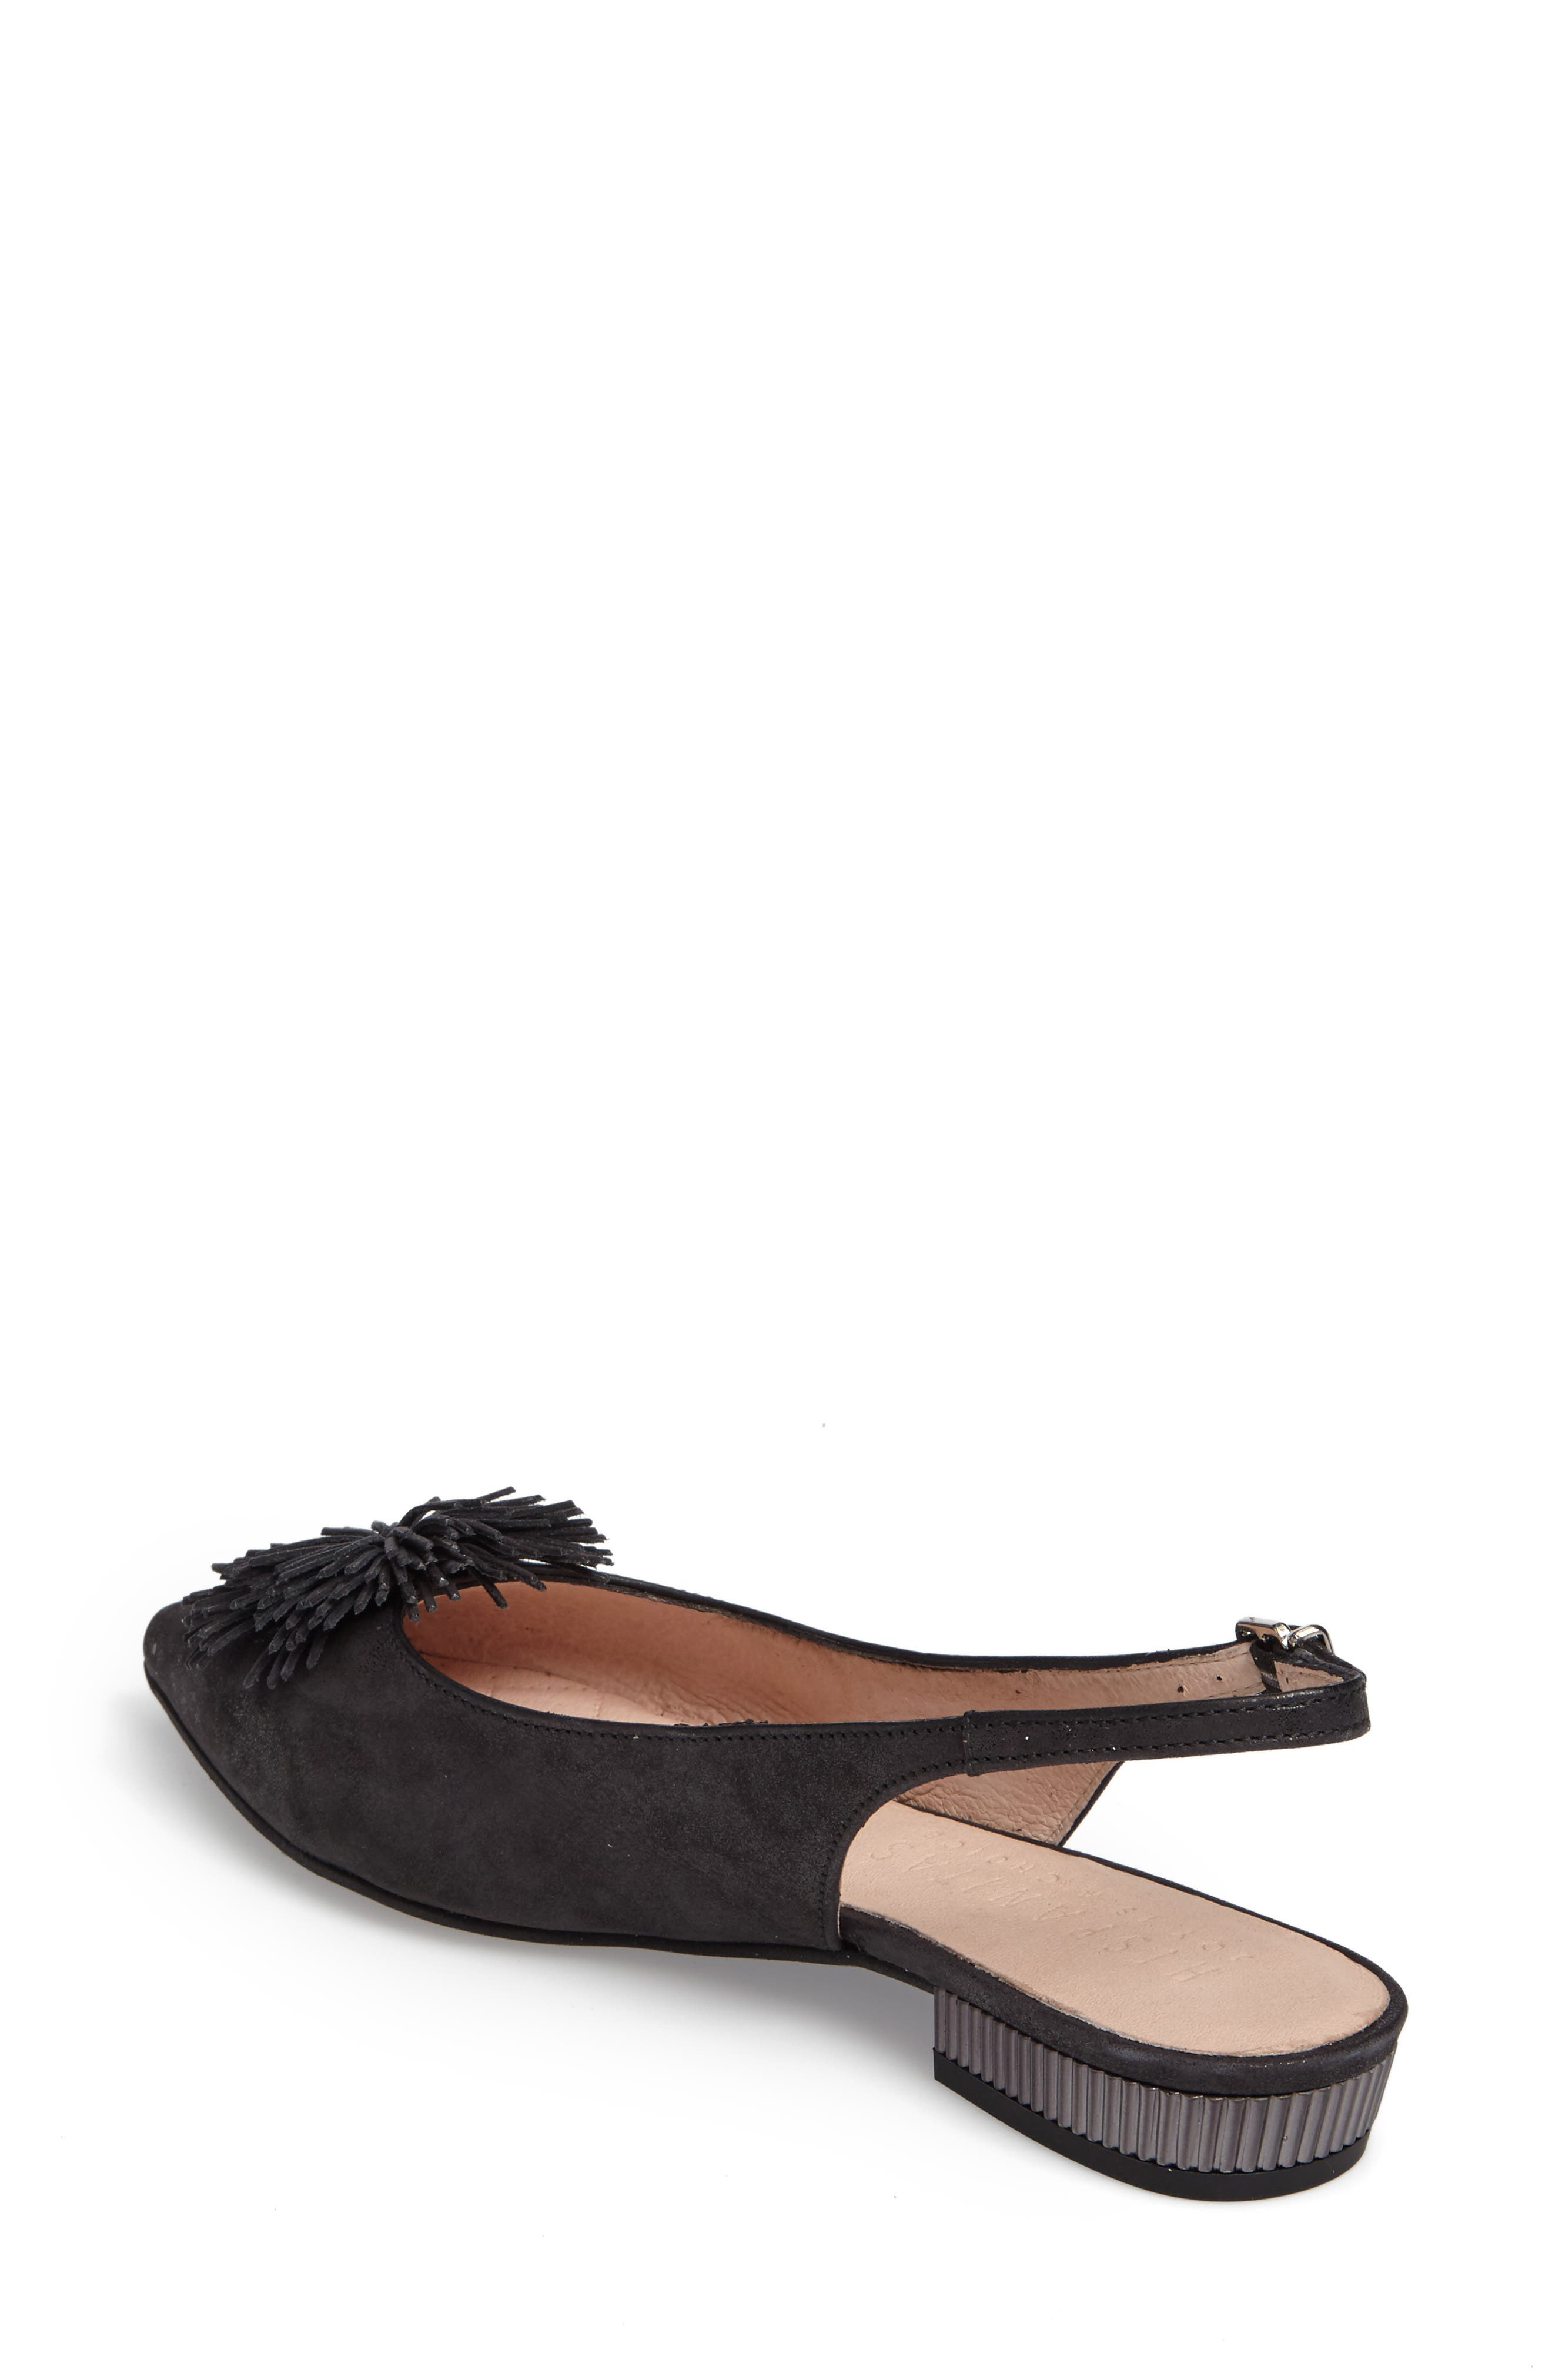 'Faylynn' Fringe Flower Slingback,                             Alternate thumbnail 2, color,                             MAGIC BLACK LEATHER